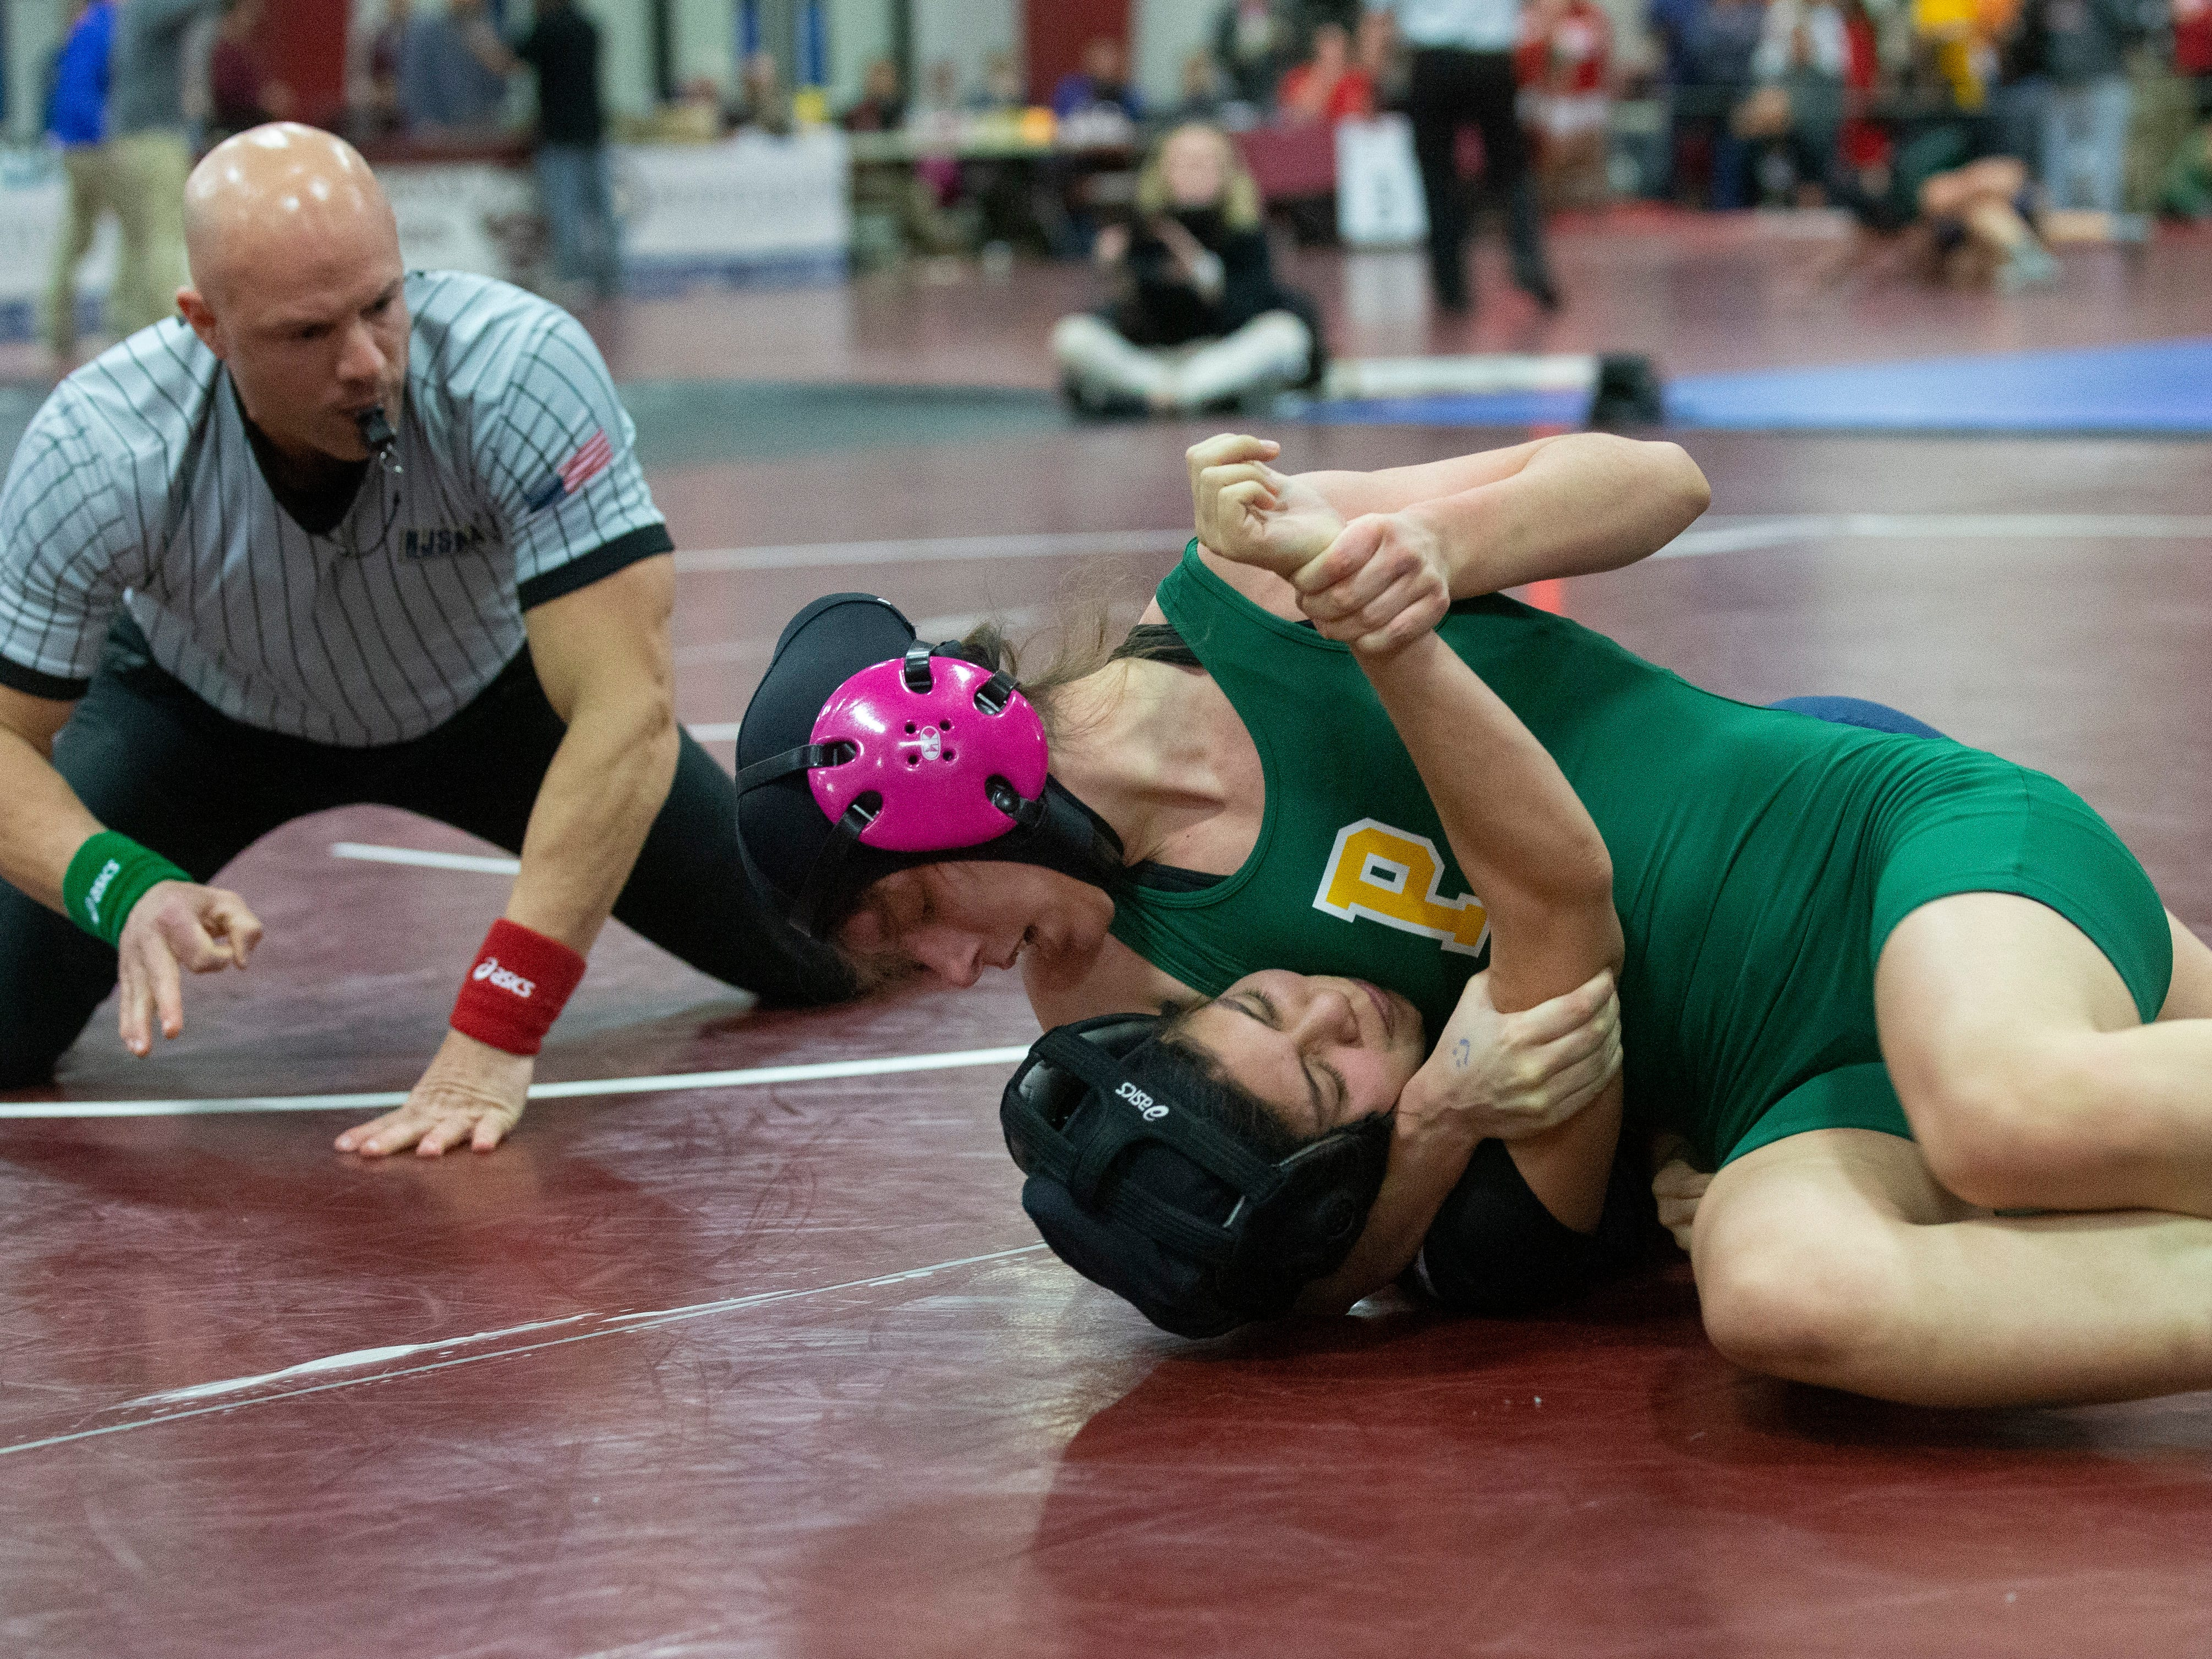 Pinelands Regional's Olivia Mena goes for pin of Notre Dame's Angelina Hernandez in their 118 lbs. bout. NJSIAA Girls Region Wrestling at Red Bank Regional High School in Red Bank NJ on February 17, 2019.